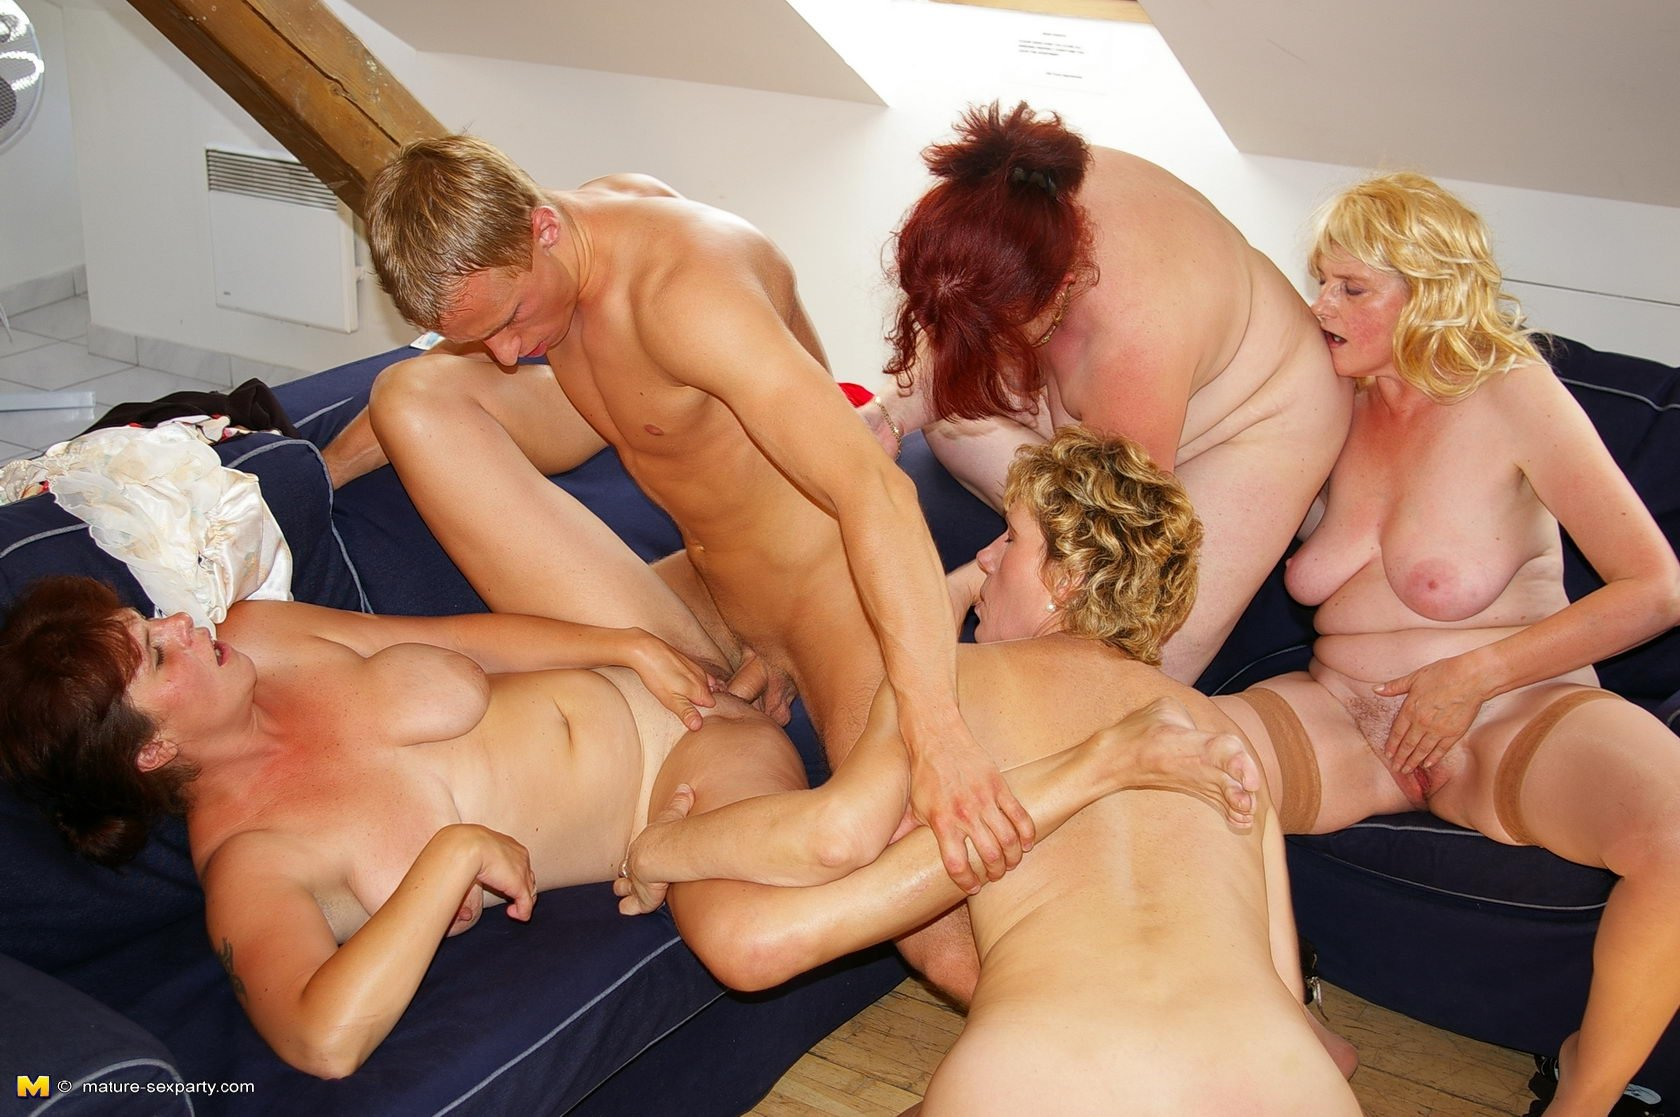 Big tits anal orgy party